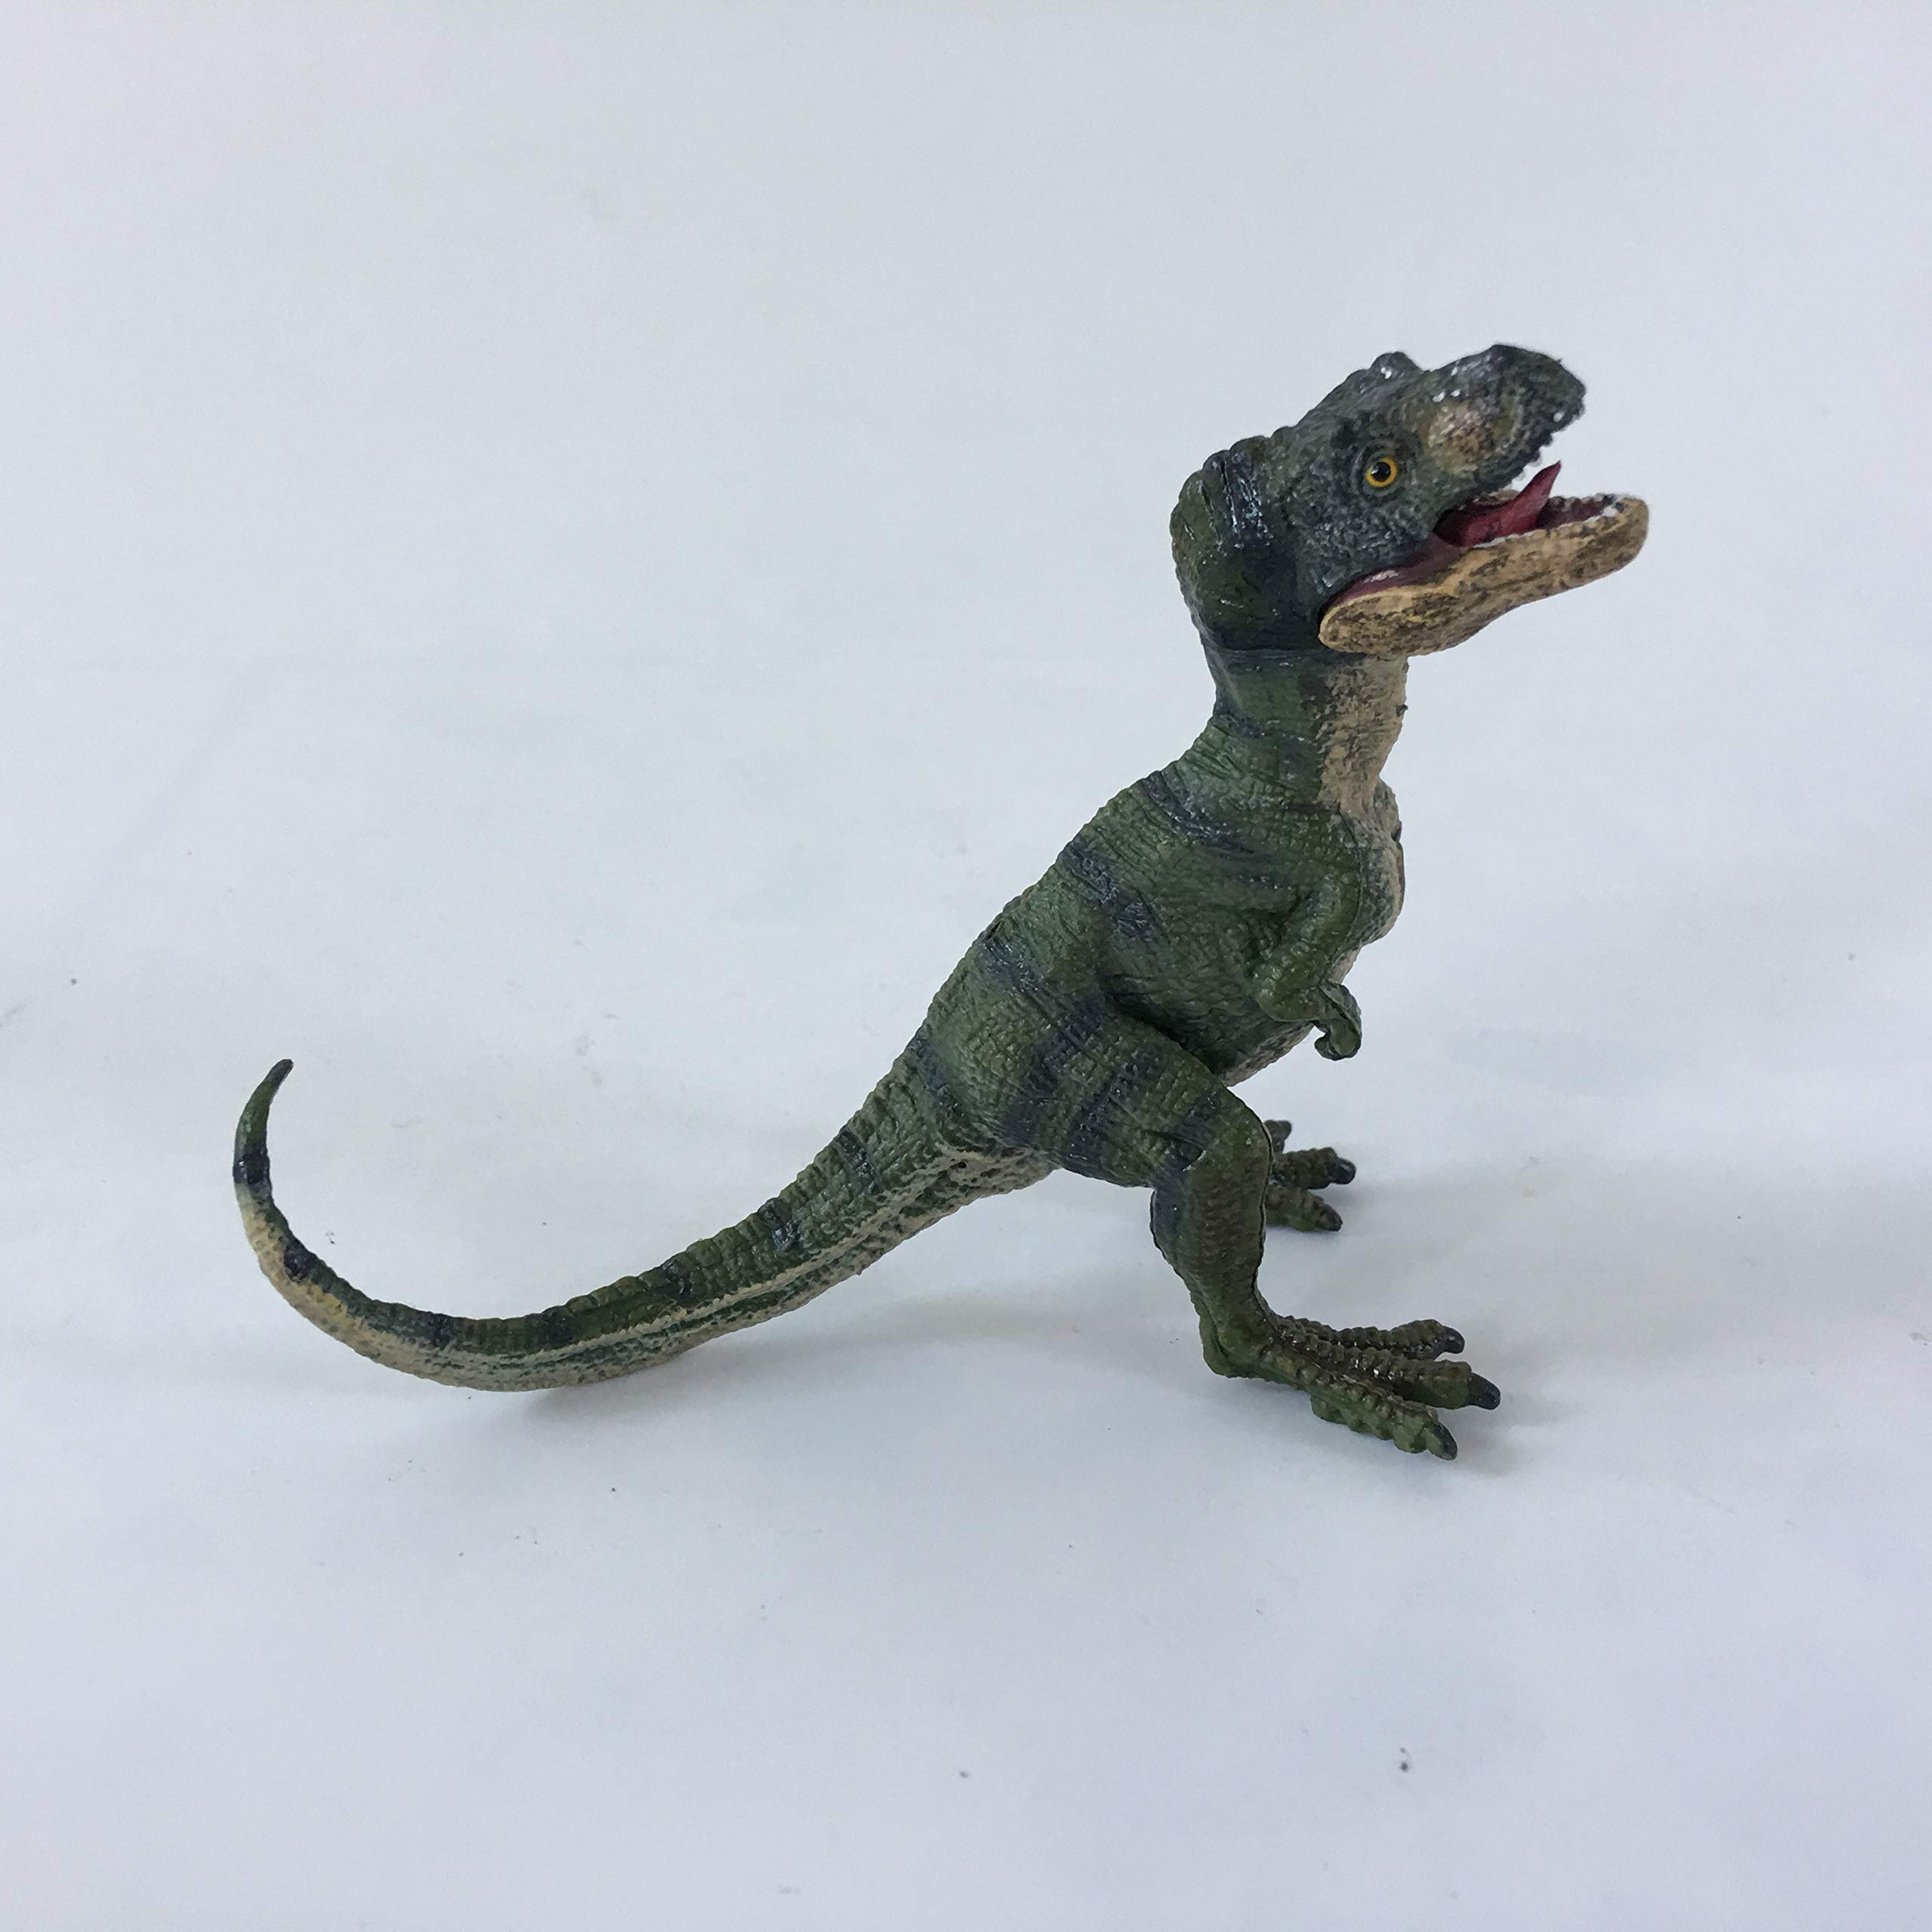 JIENI Educational Dinosaur Toys, Kids Realistic Toy Dinosaur Figures Authentic Type Plastic Dinosaurs Jurassic Dinosaur Statue Kids and Toddler Education ( M5016 )